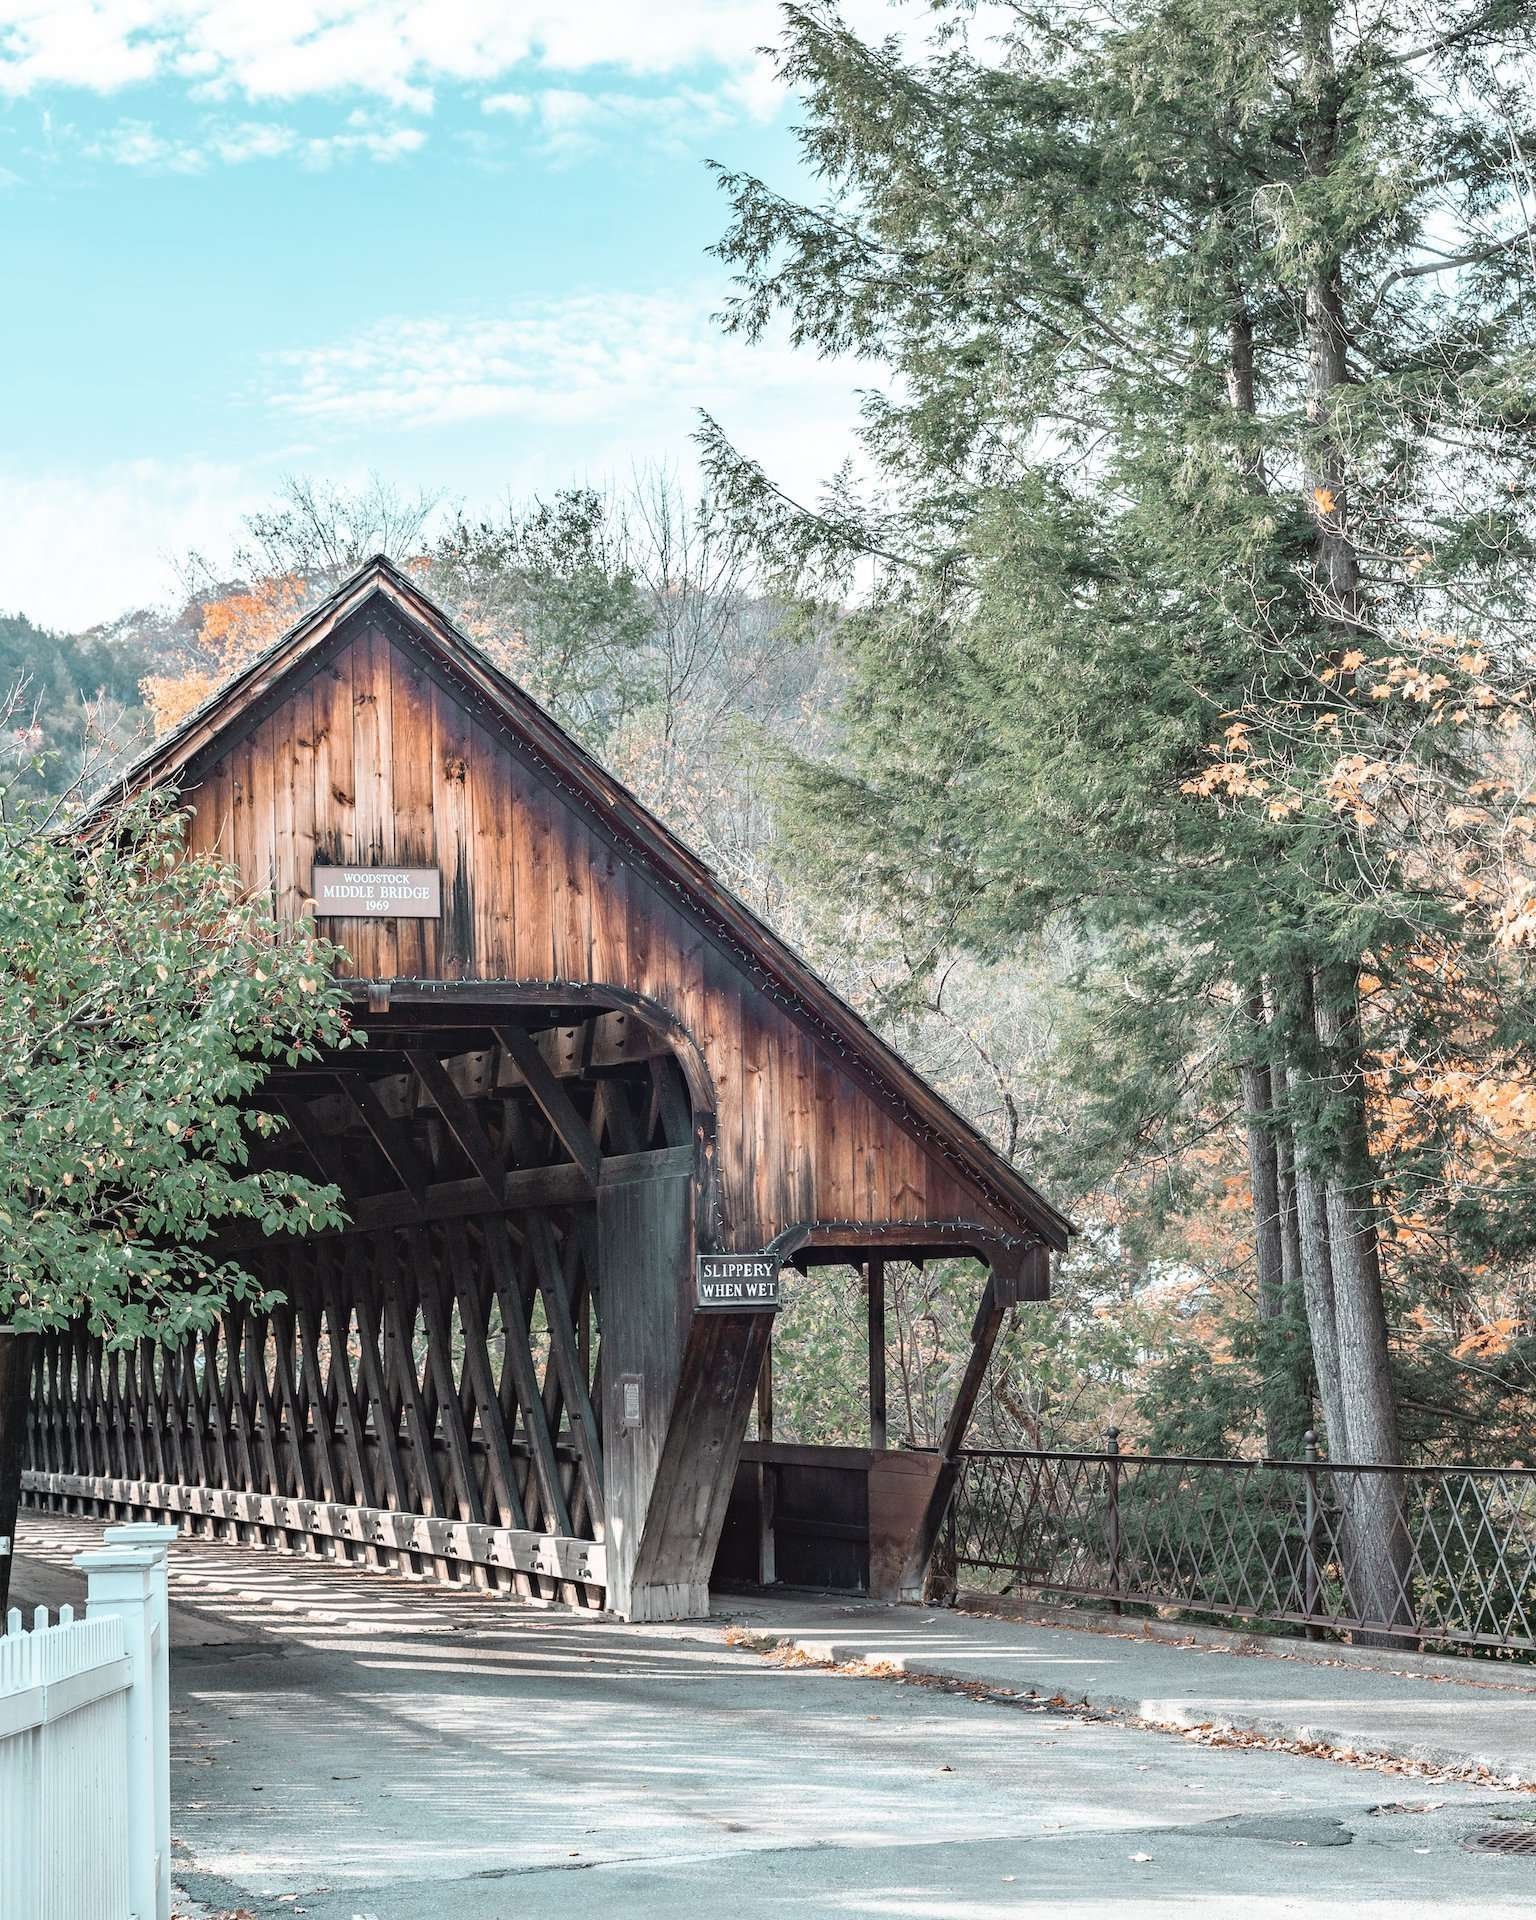 Middle Covered Bridge, Woodstock